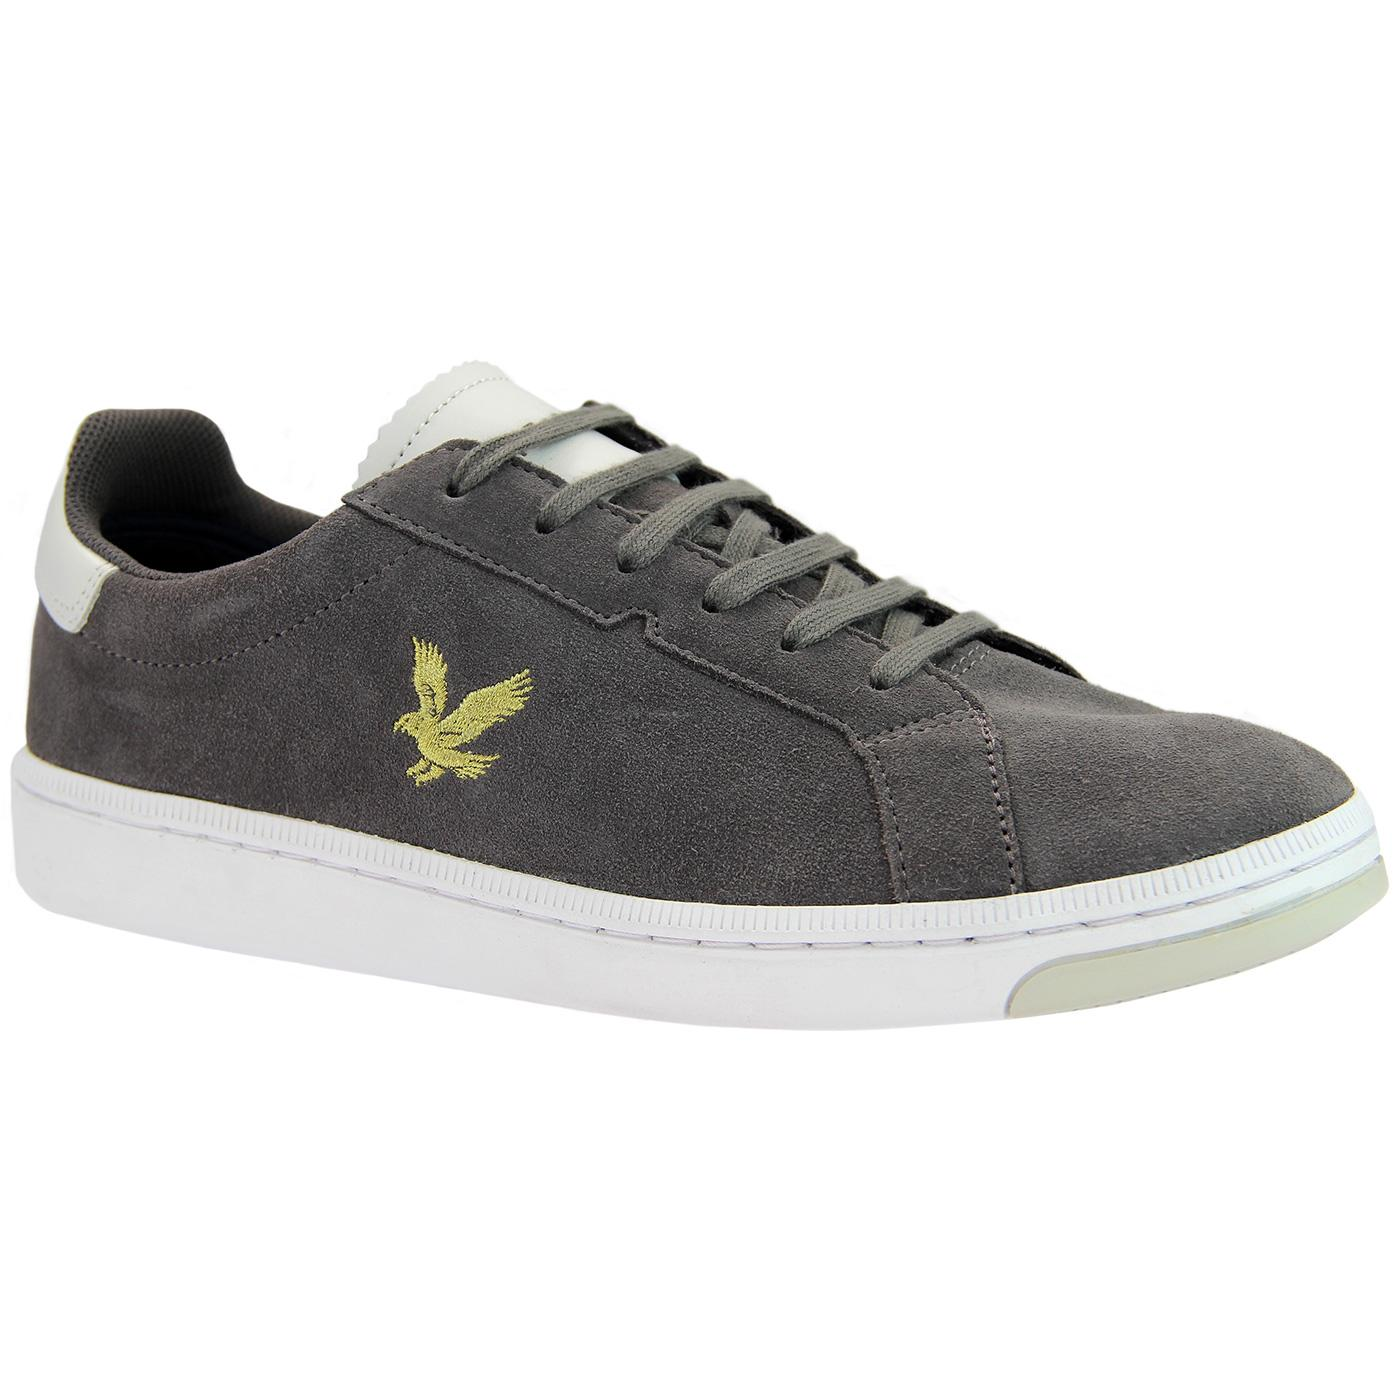 Burchill LYLE & SCOTT Mens Mod Suede Trainers Grey